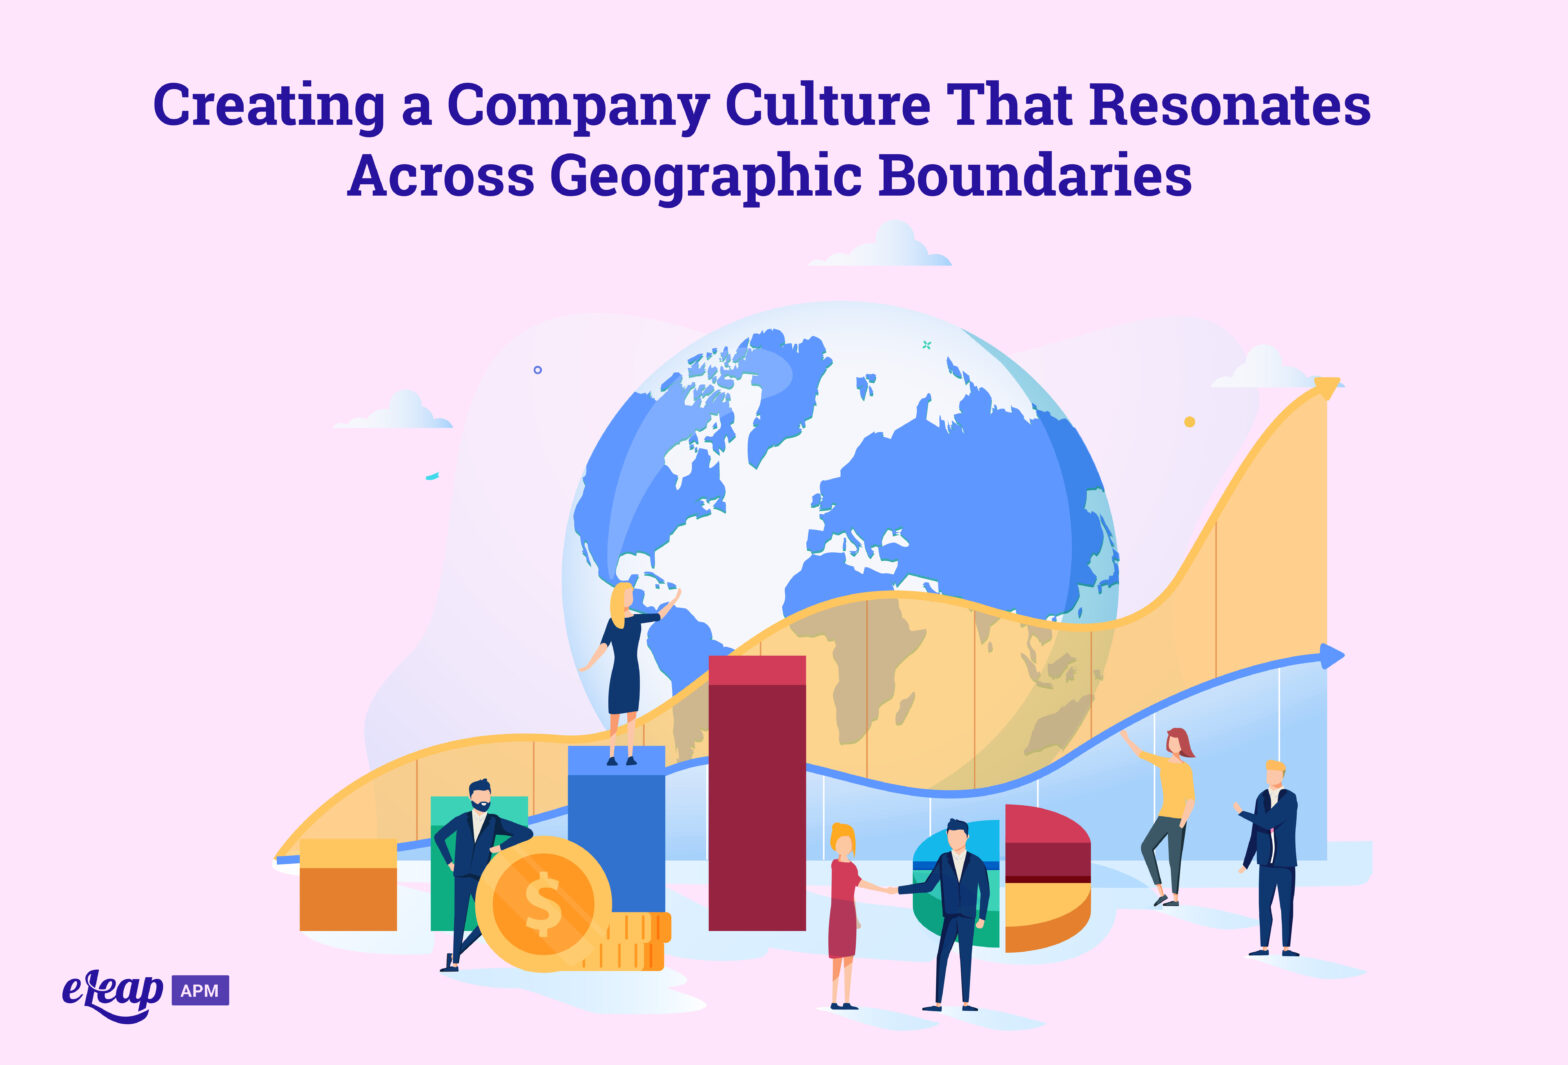 Creating a Company Culture That Resonates Across Geographic Boundaries